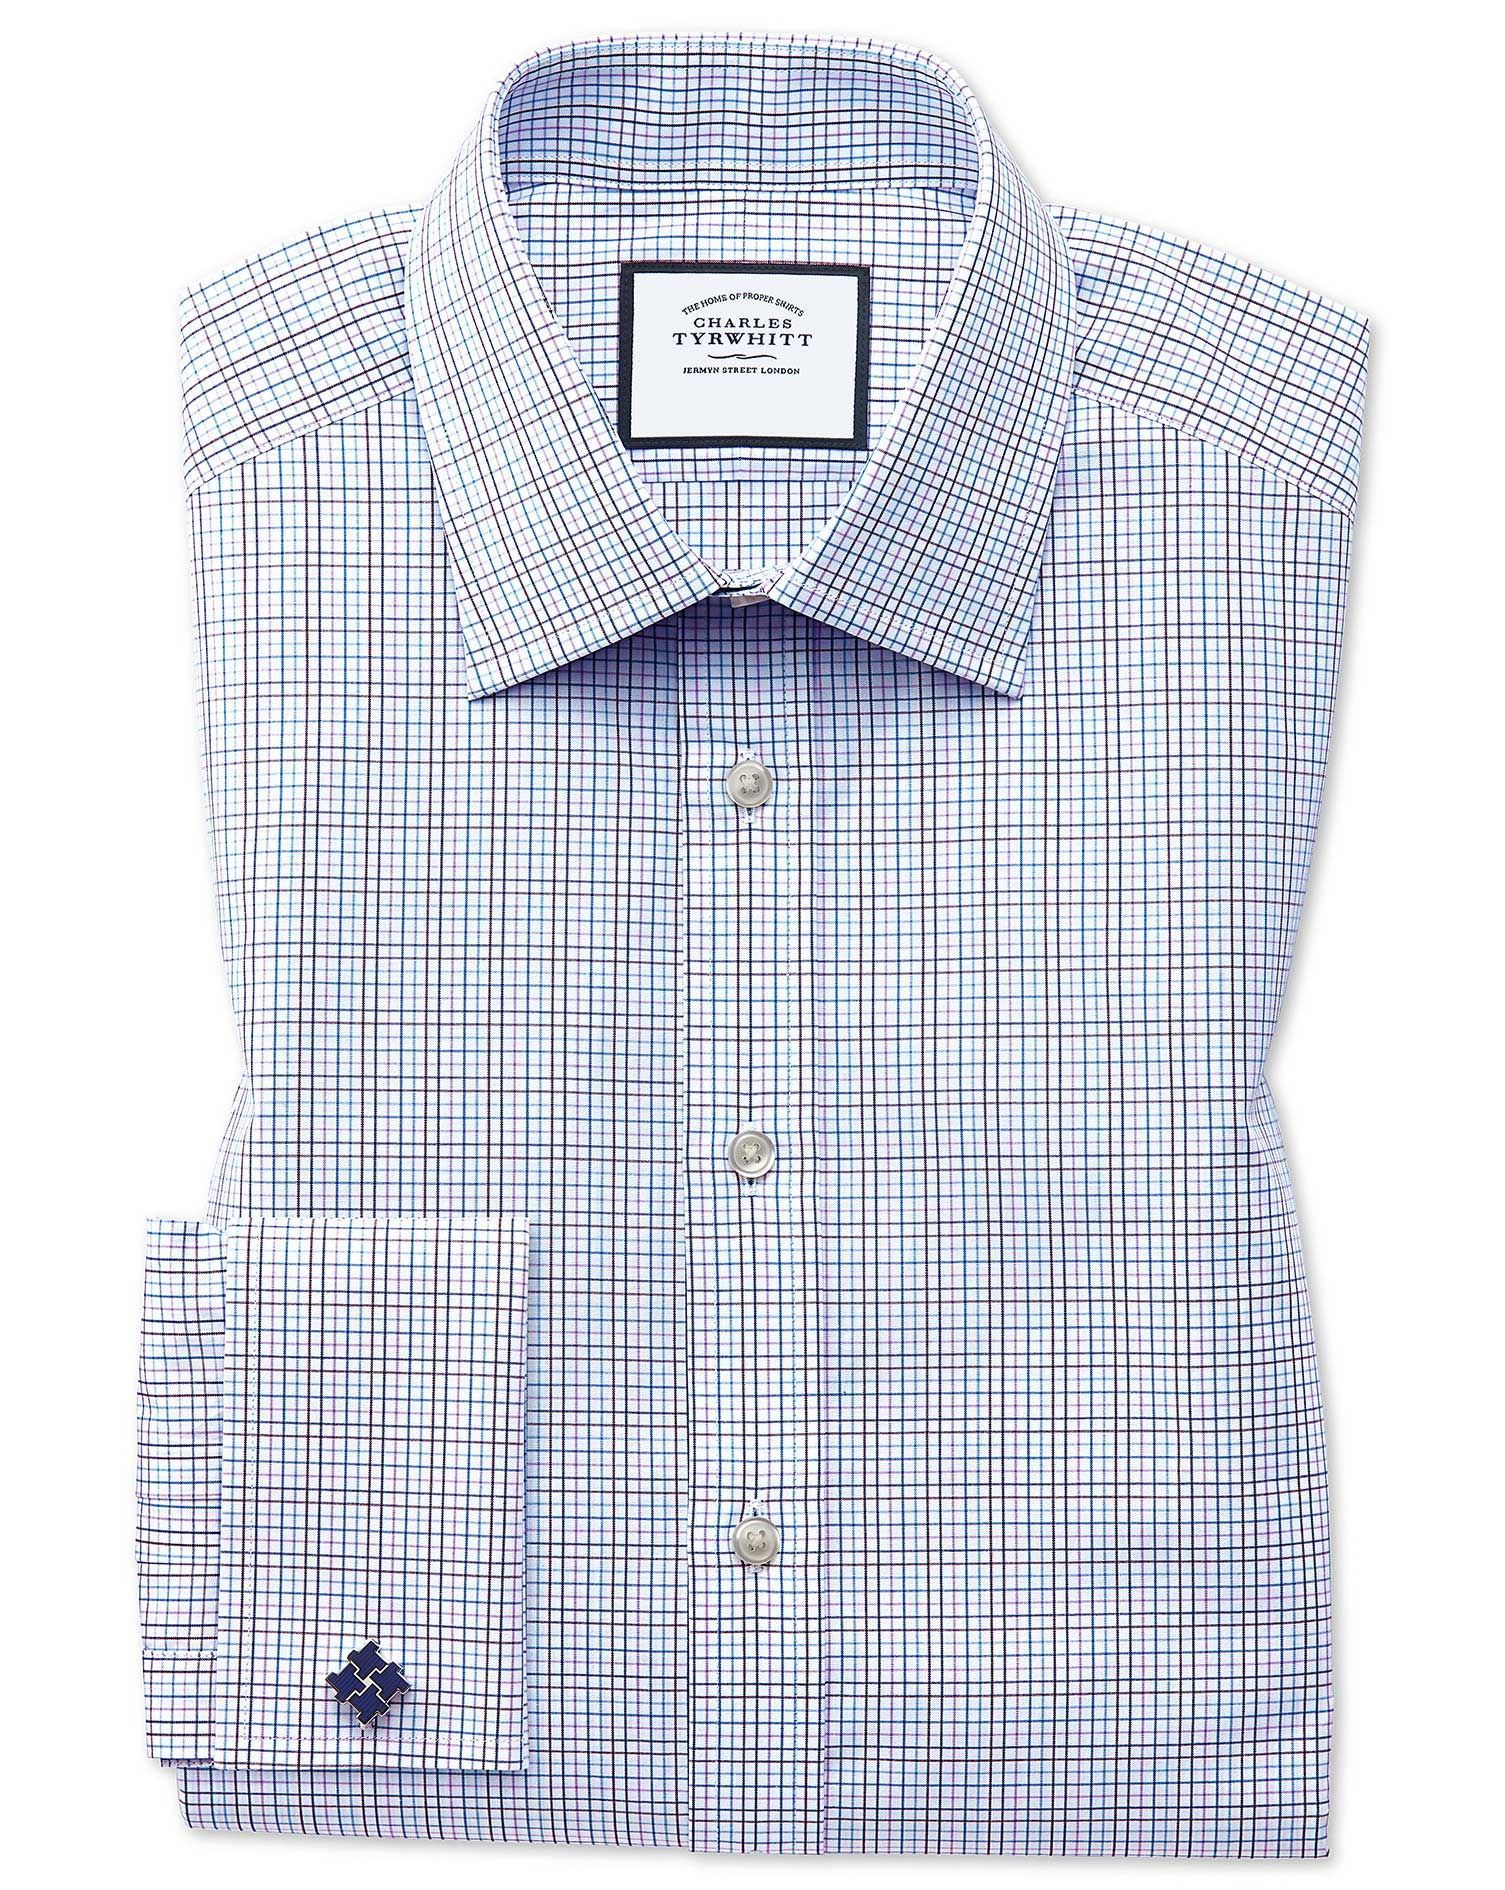 Classic Fit Purple Multi Check Egyptian Cotton Formal Shirt Double Cuff Size 16/33 by Charles Tyrwhi